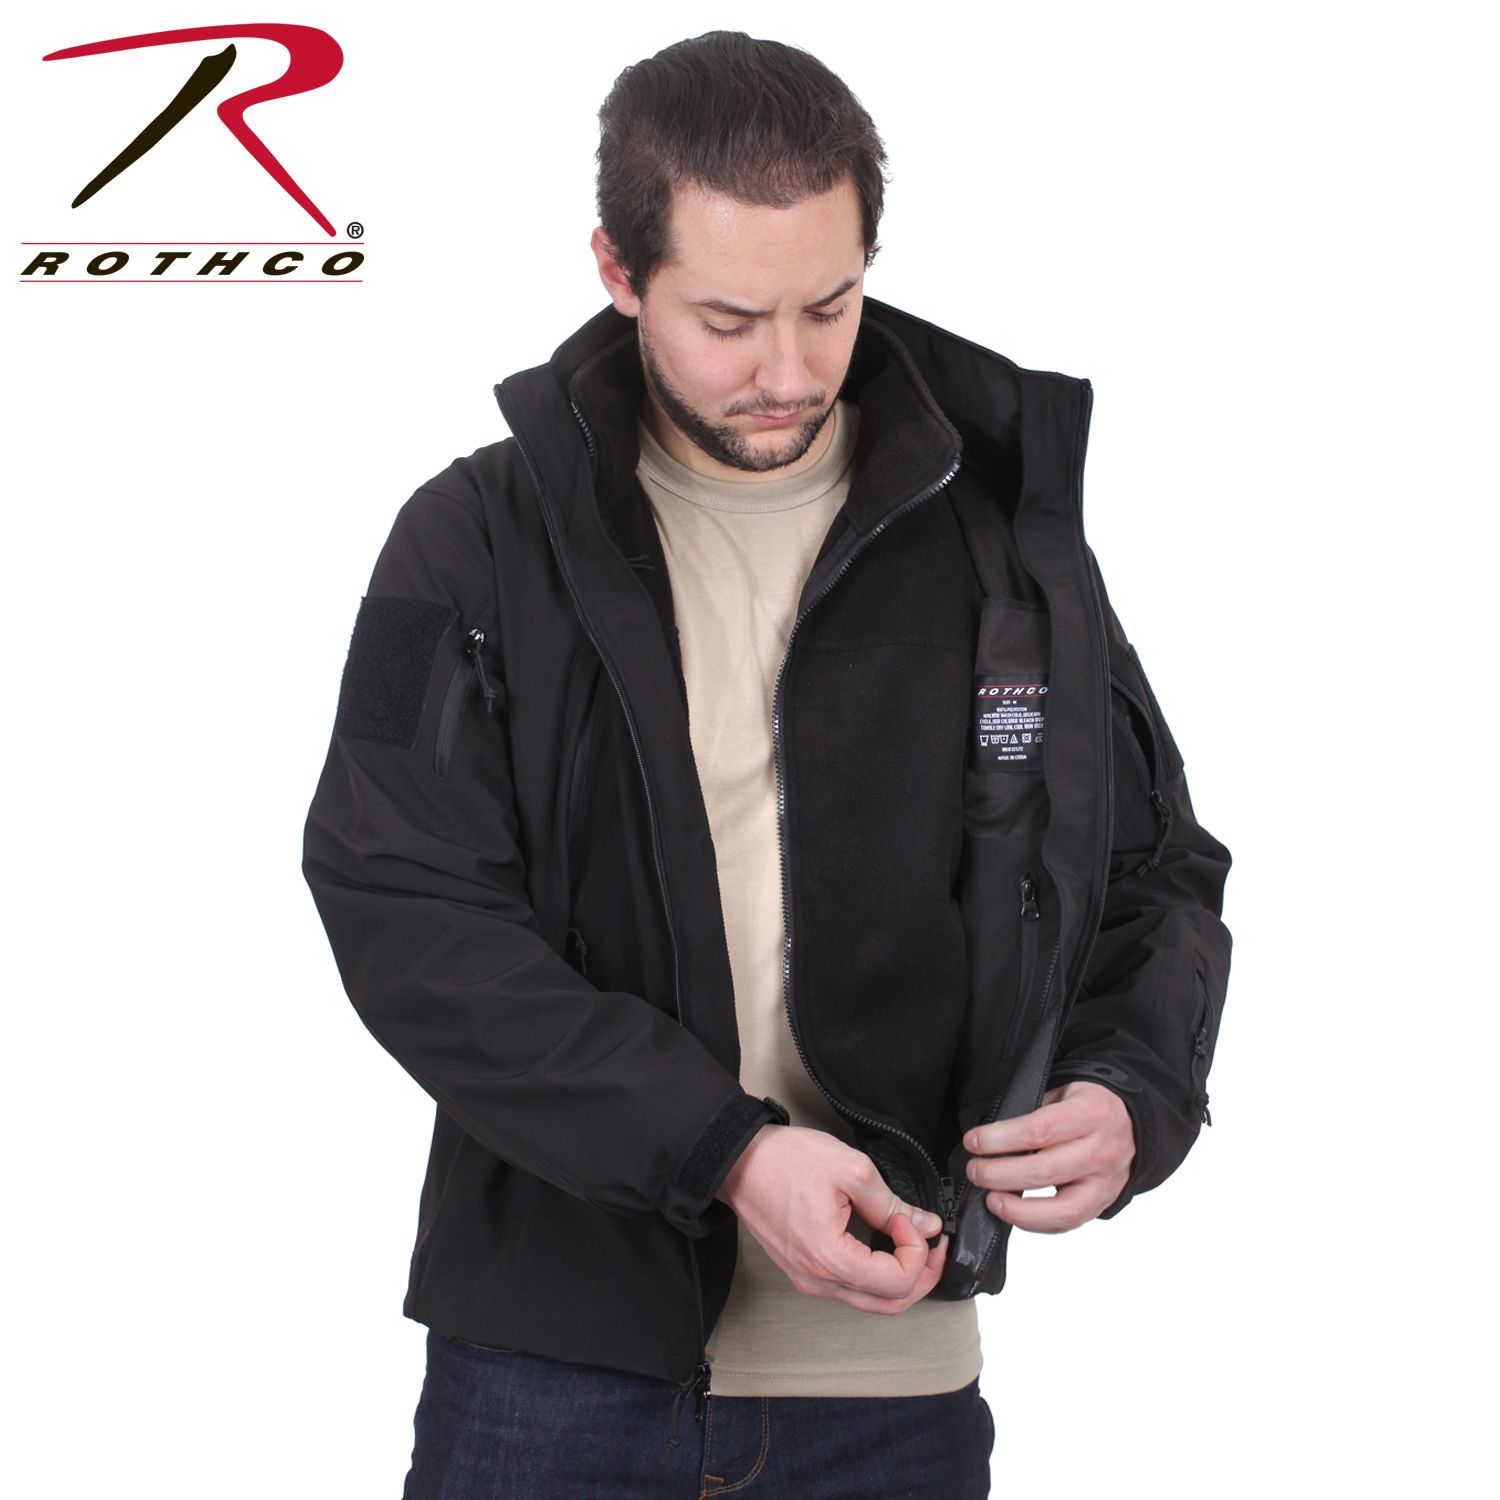 Rothco 3 In 1 Spec Ops Soft Shell Jacket Soft Shell Jacket Rothco Jackets [ 1500 x 1500 Pixel ]